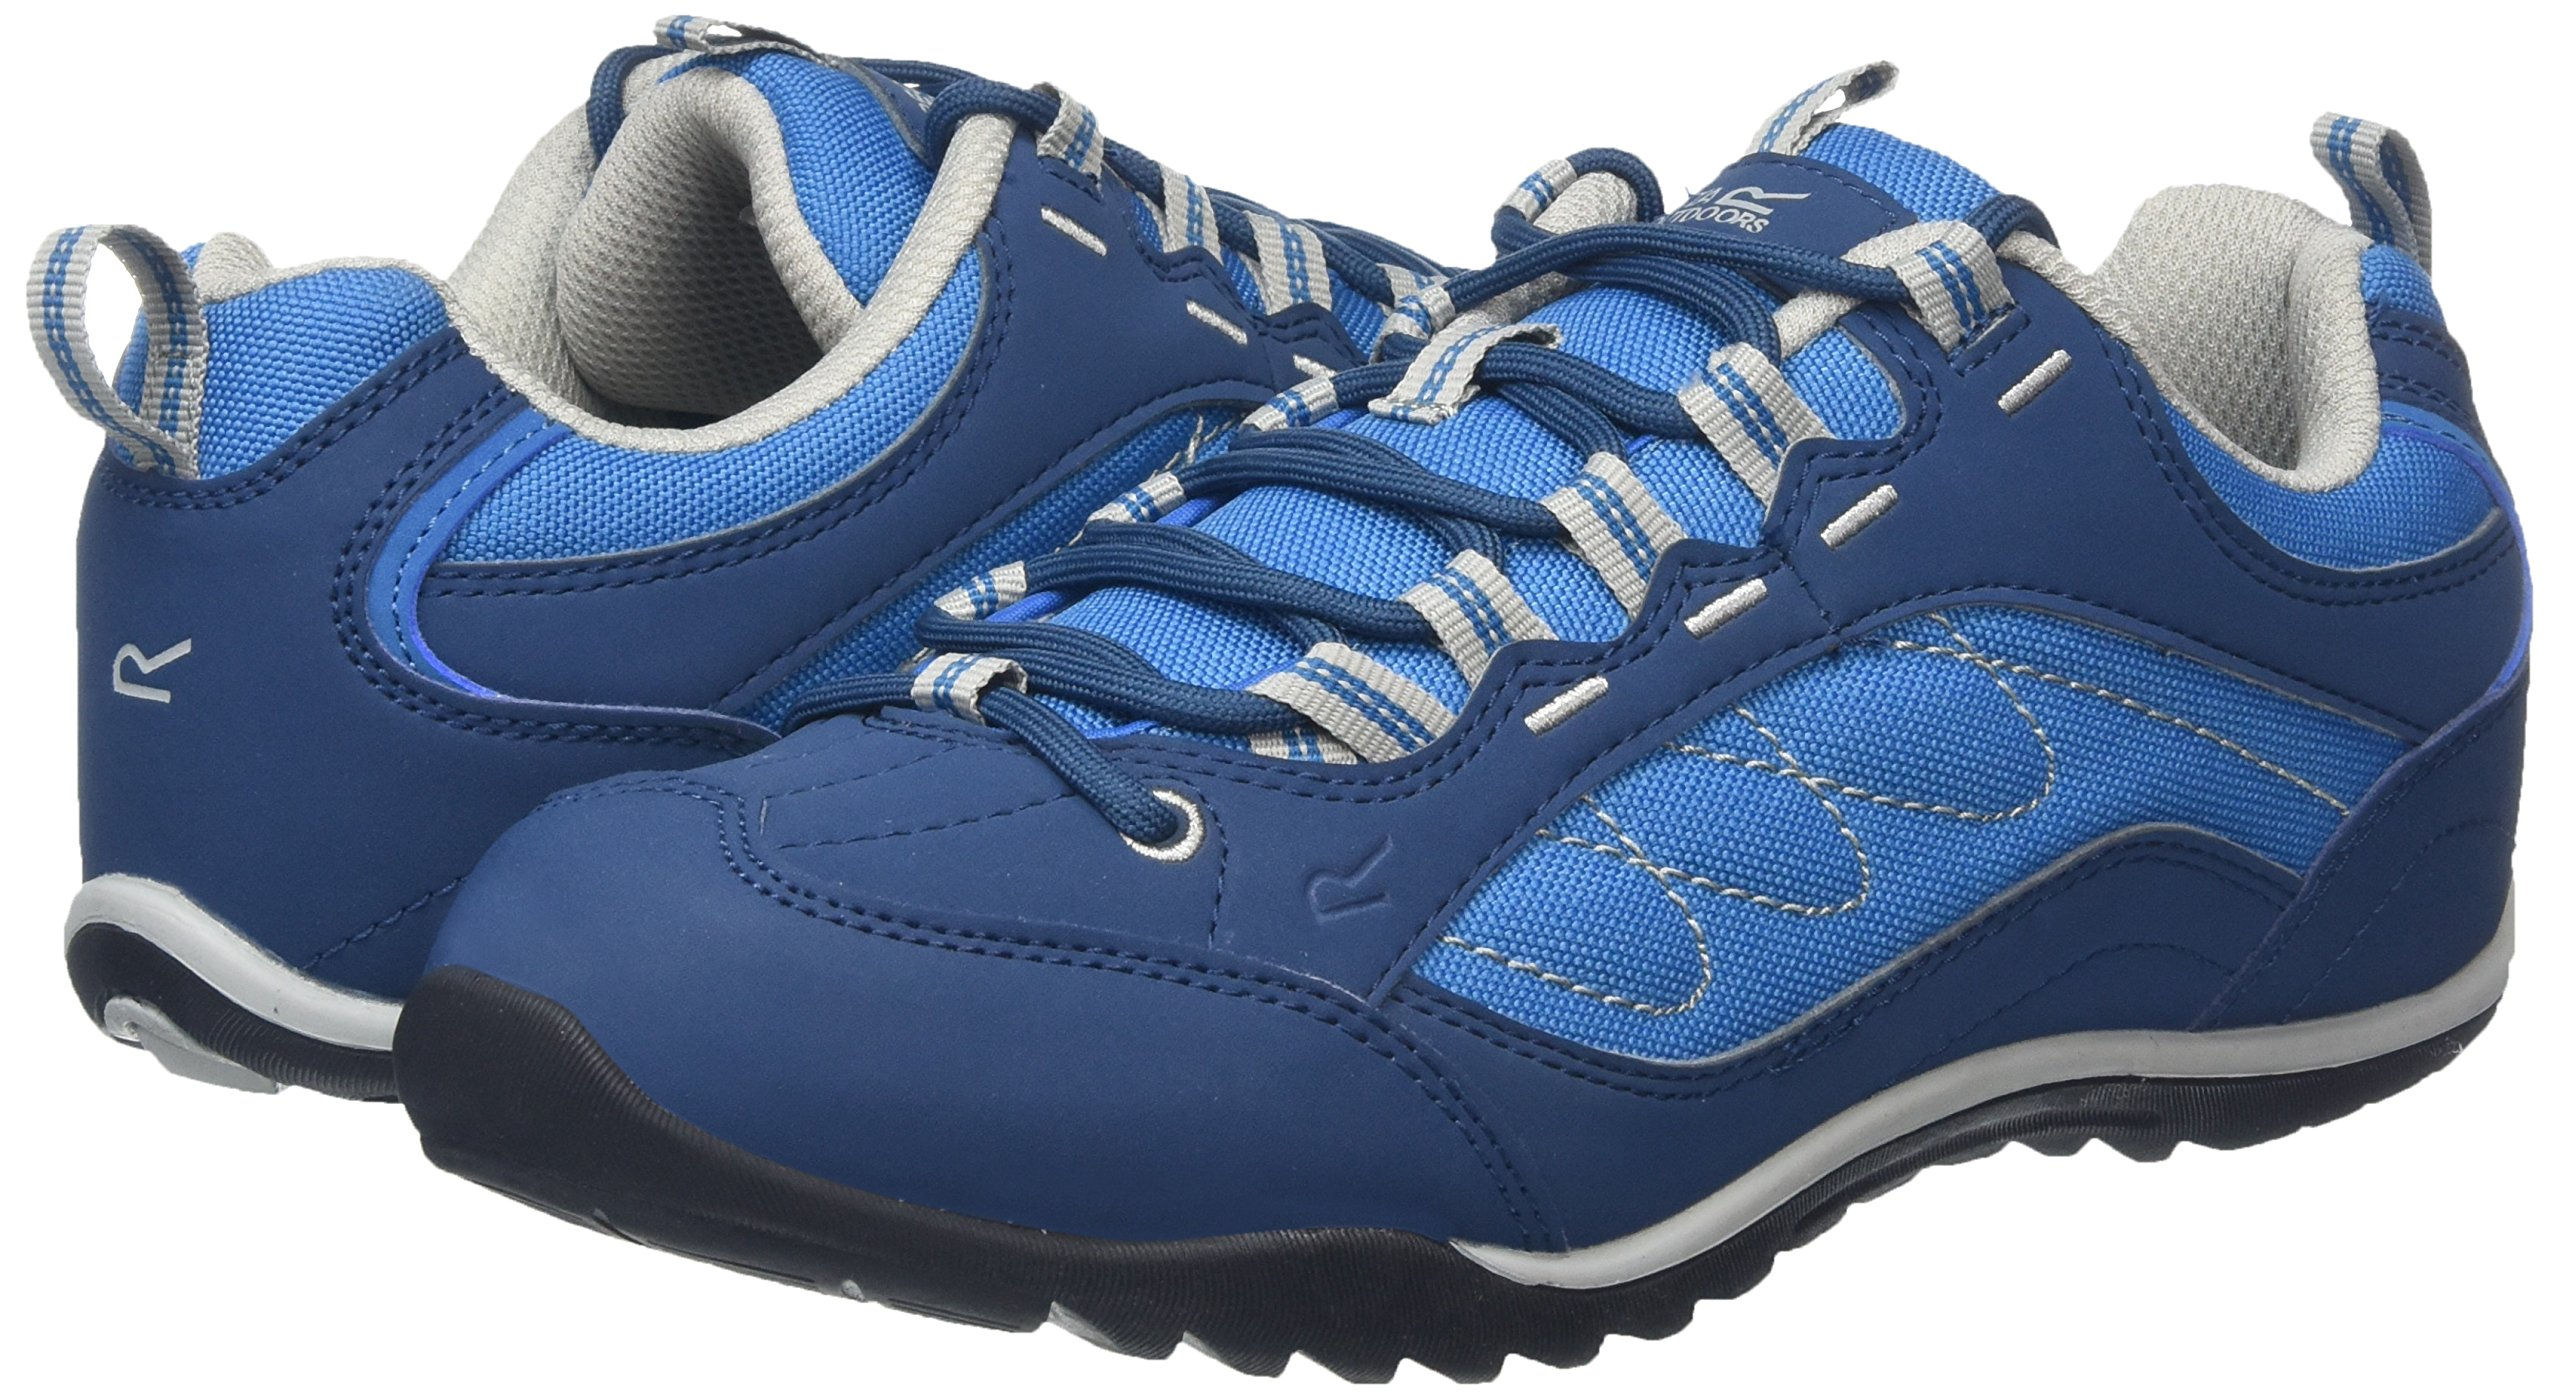 Regatta Lady Eastmoor, Women's Low Rise Hiking Shoes 5